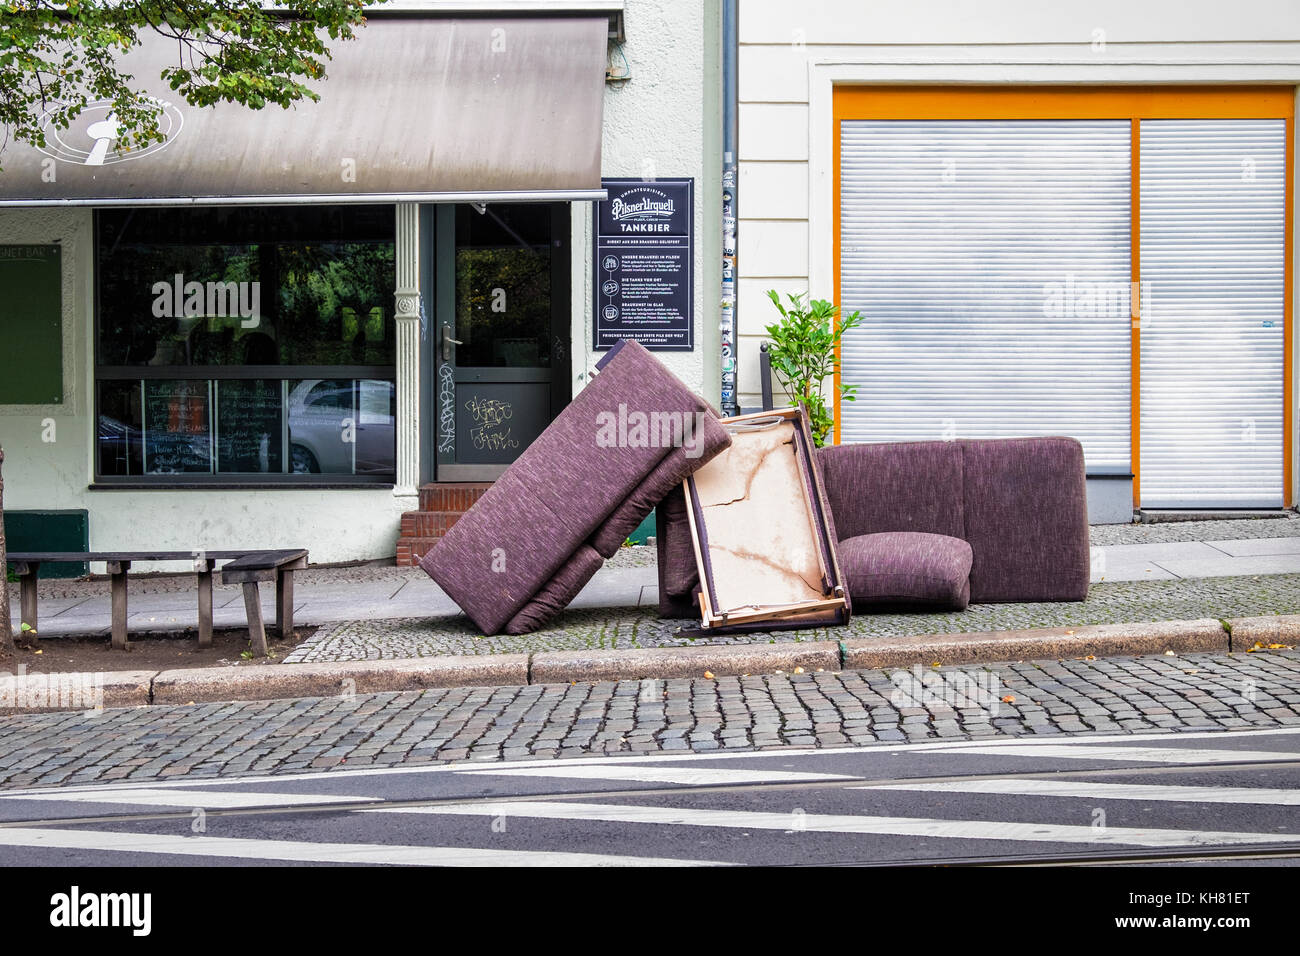 Germnay,Berlin, Abandoned furniture on city pavement outside pub, dumped couches, trashed couch - Stock Image